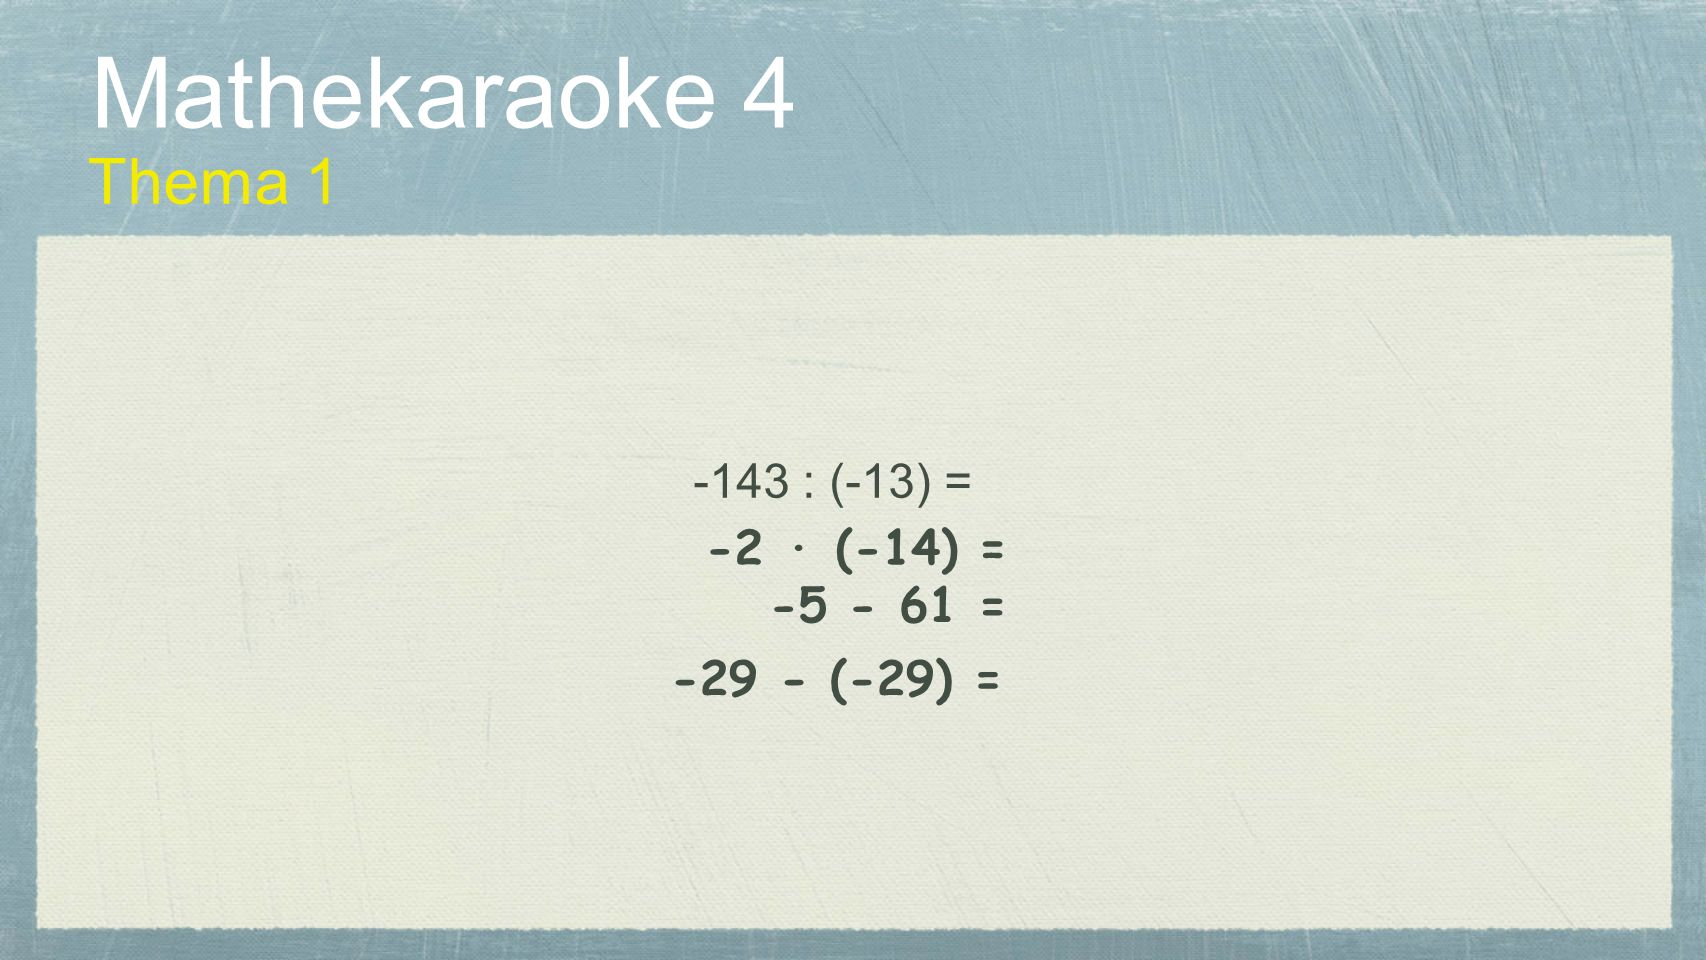 Mathekaraoke 4 Thema 1 -143 : (-13) = -2 · (-14) = -5 - 61 =